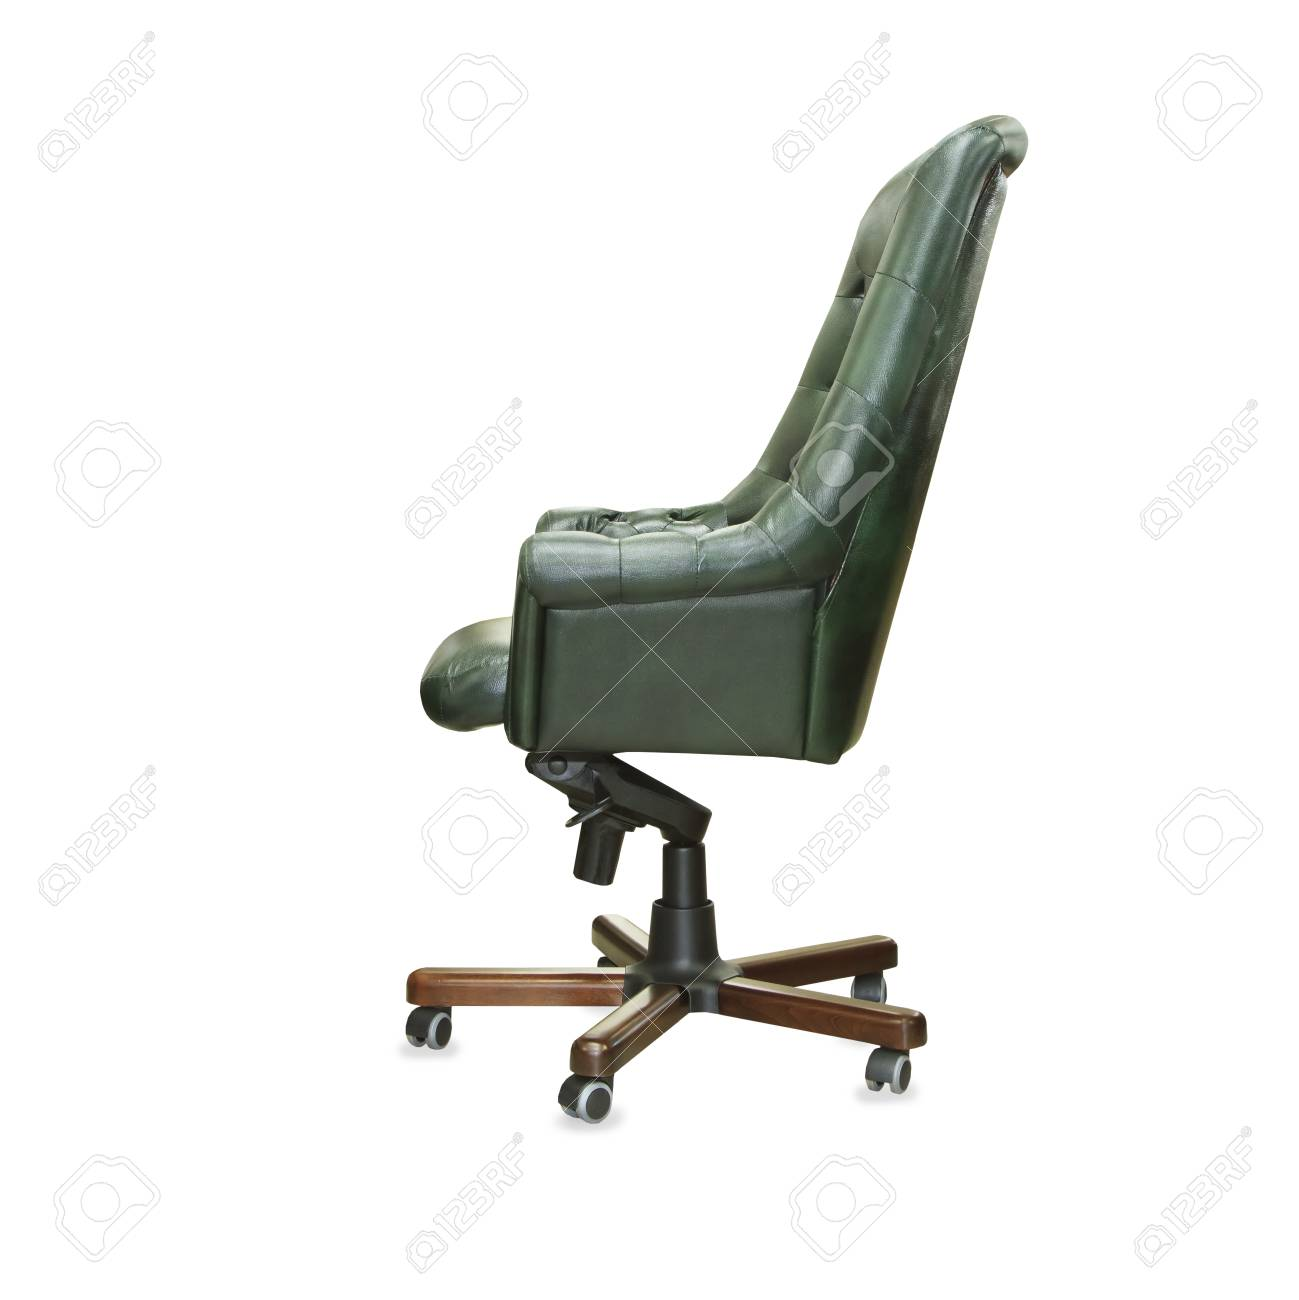 president office chair. Stock Photo - The Profile View Of President Office Chair From Green Leather. Isolated